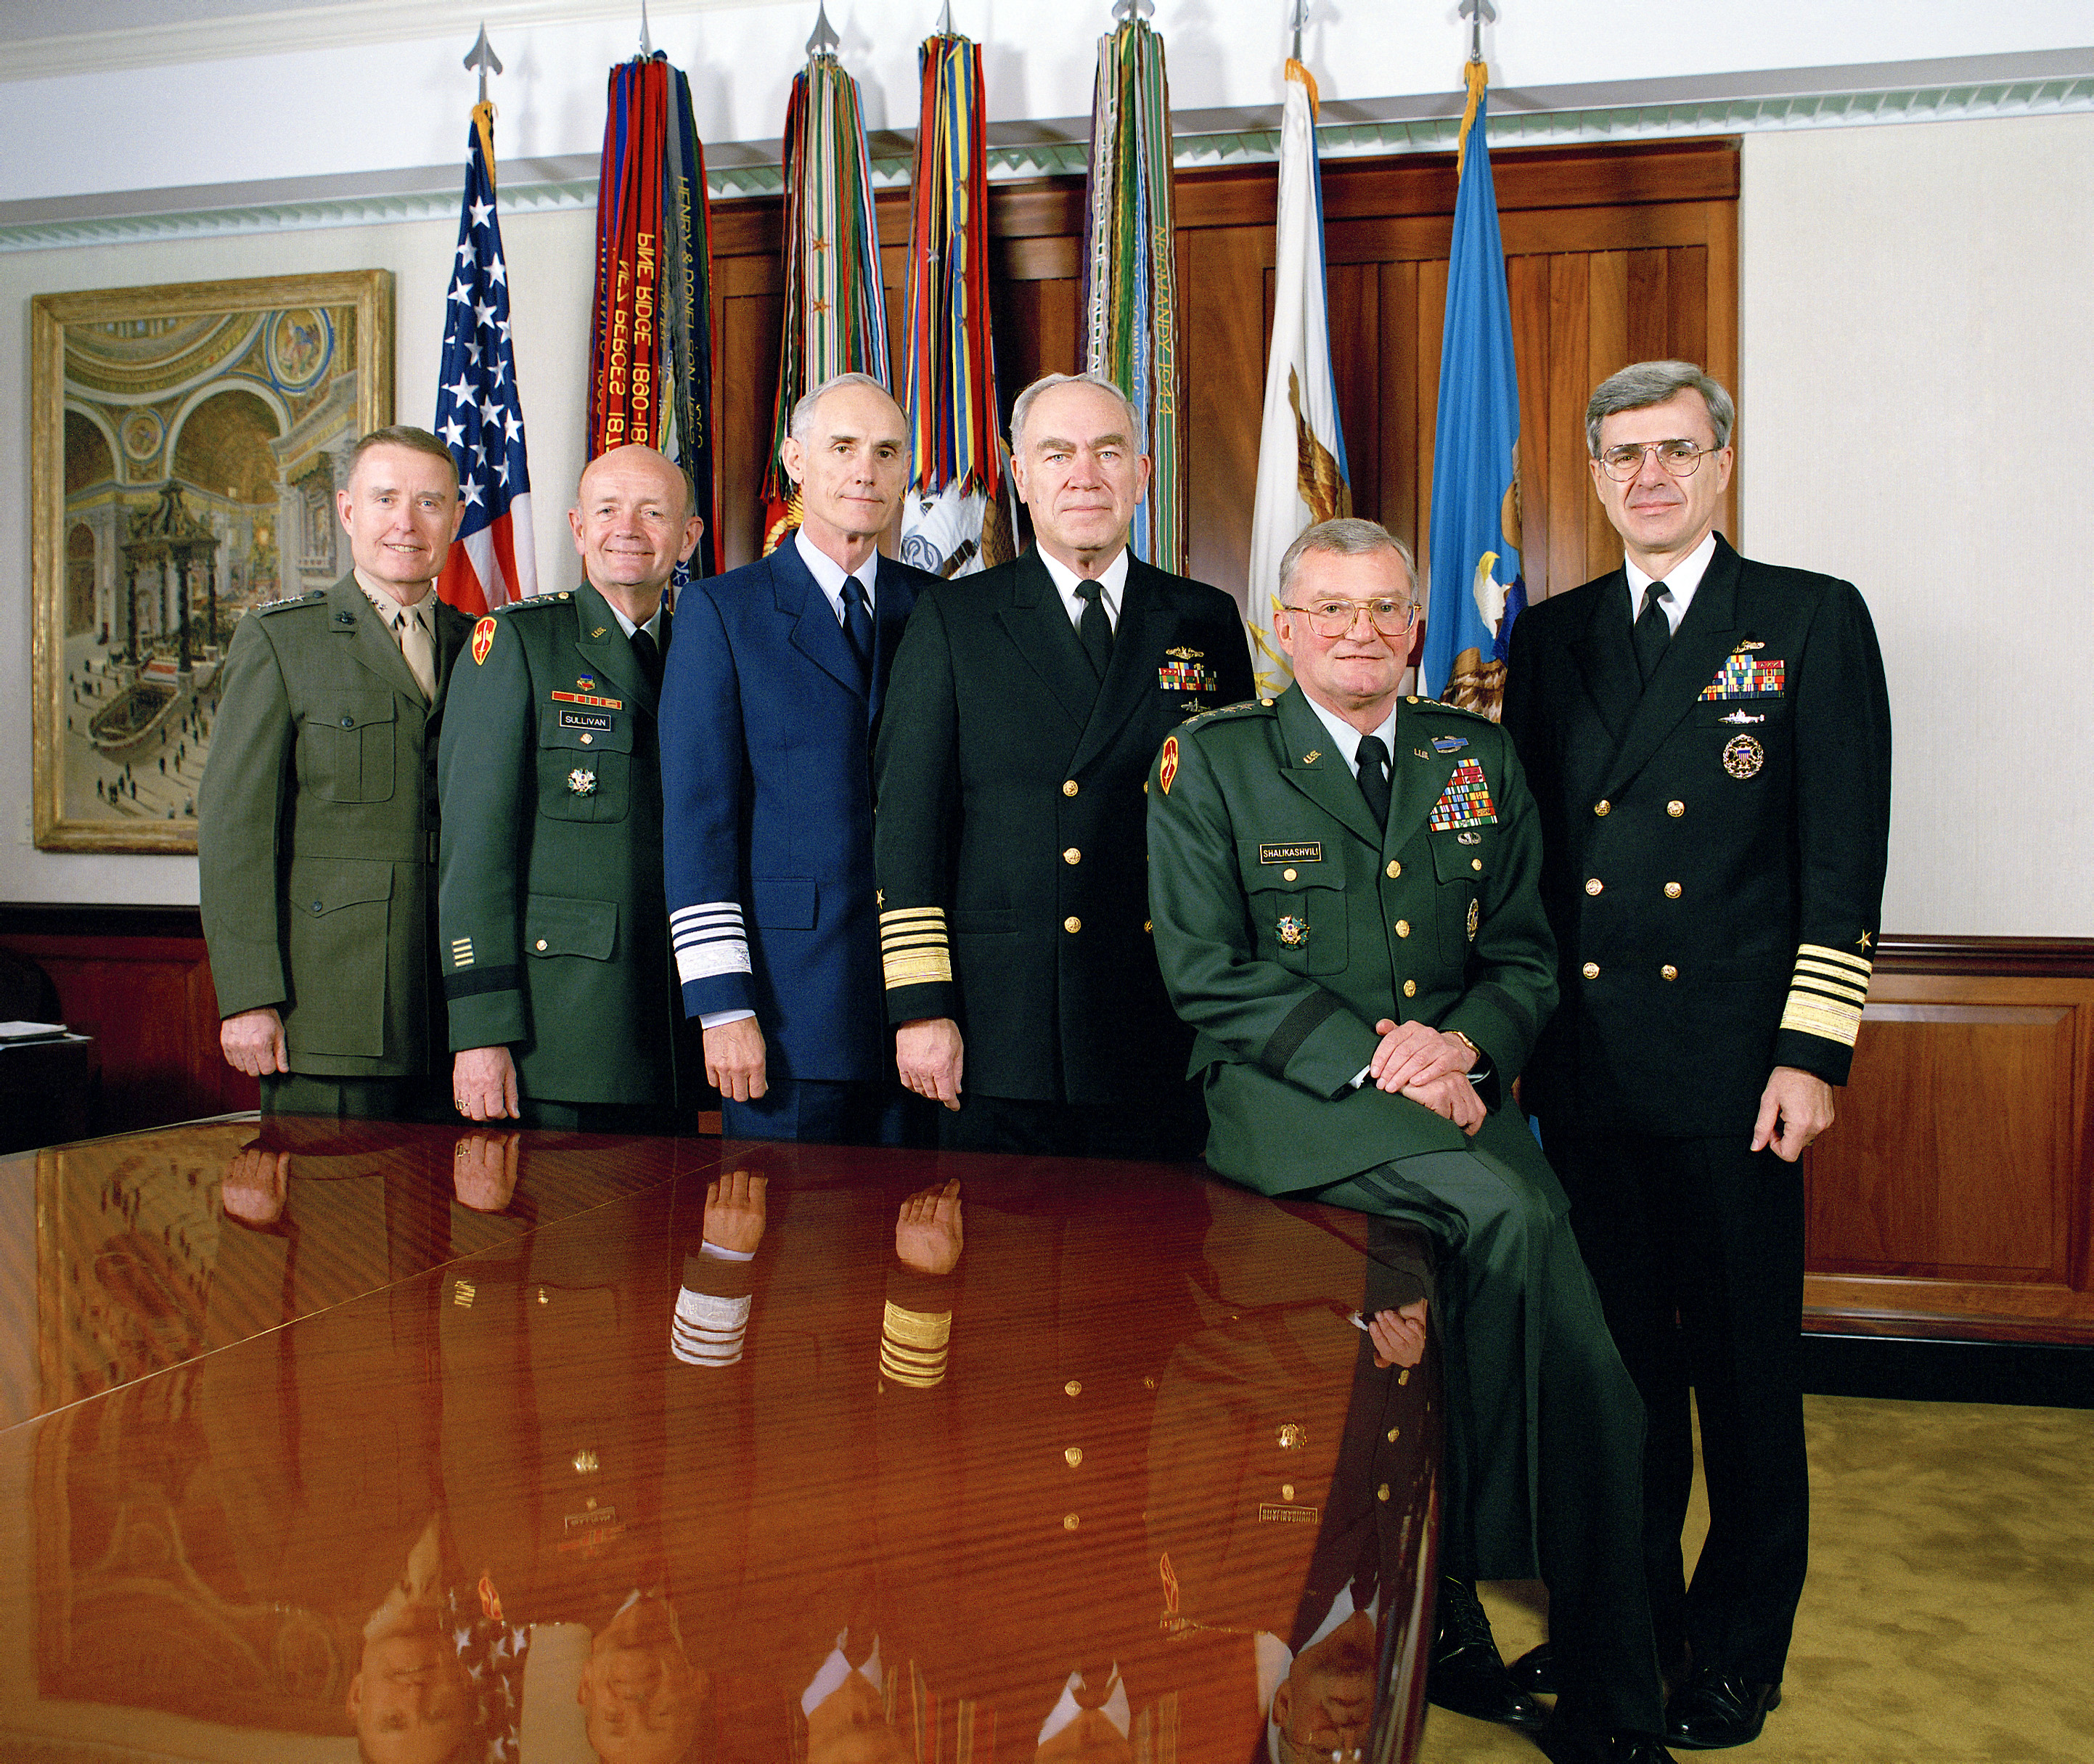 ELI5: Why do people in the military often wear their uniform